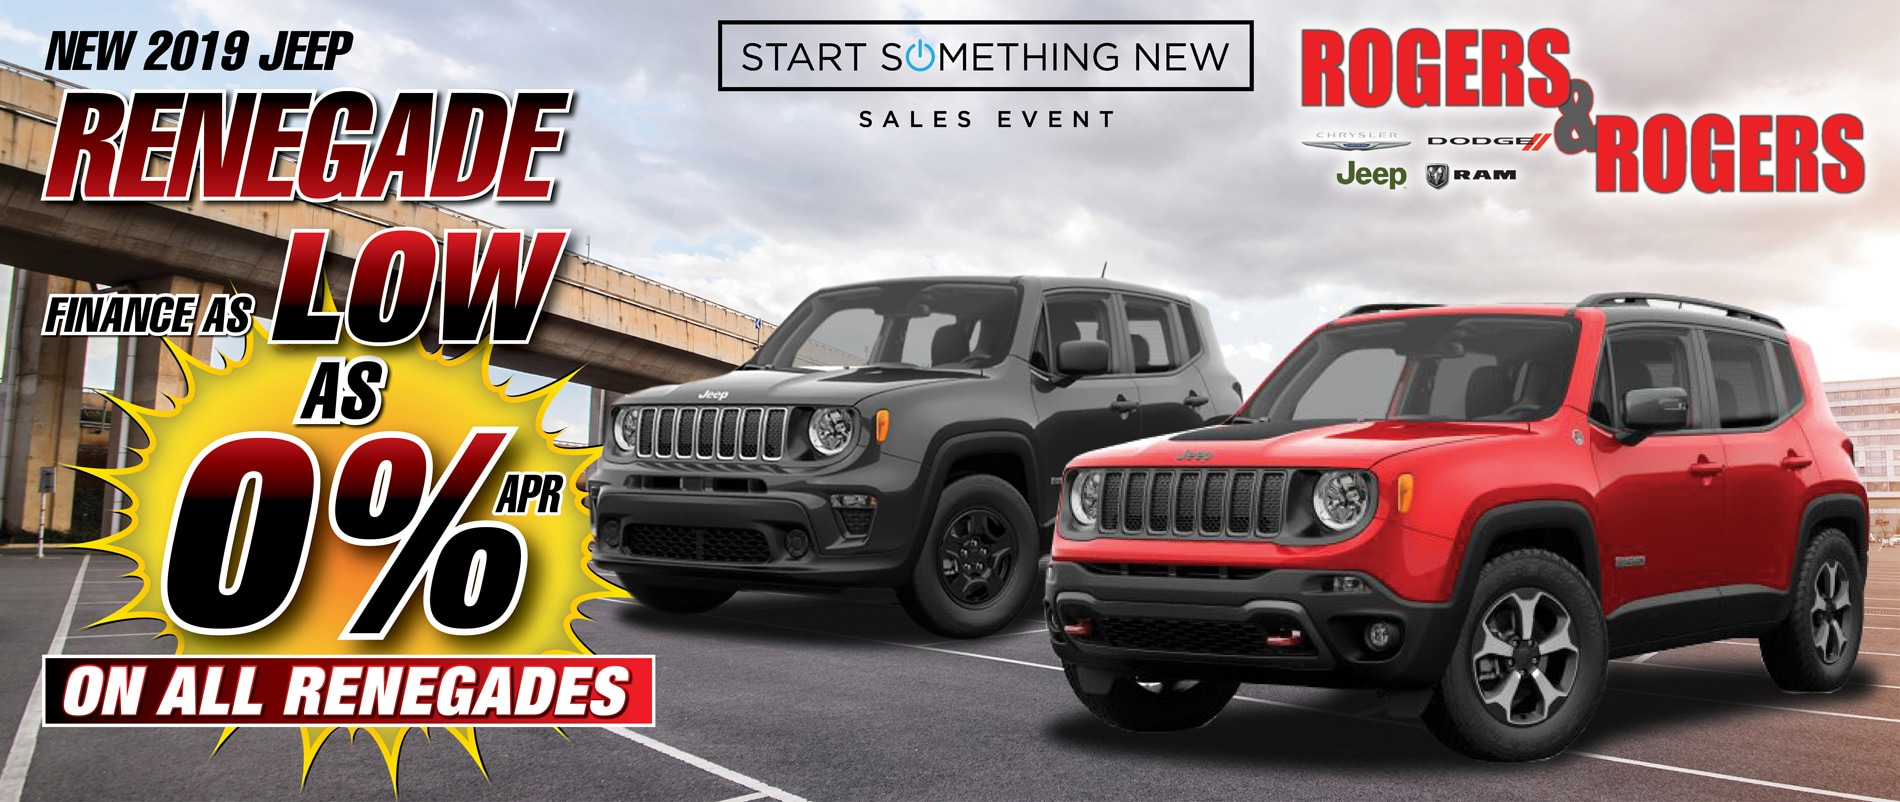 Jeep Renegade Lease Deal